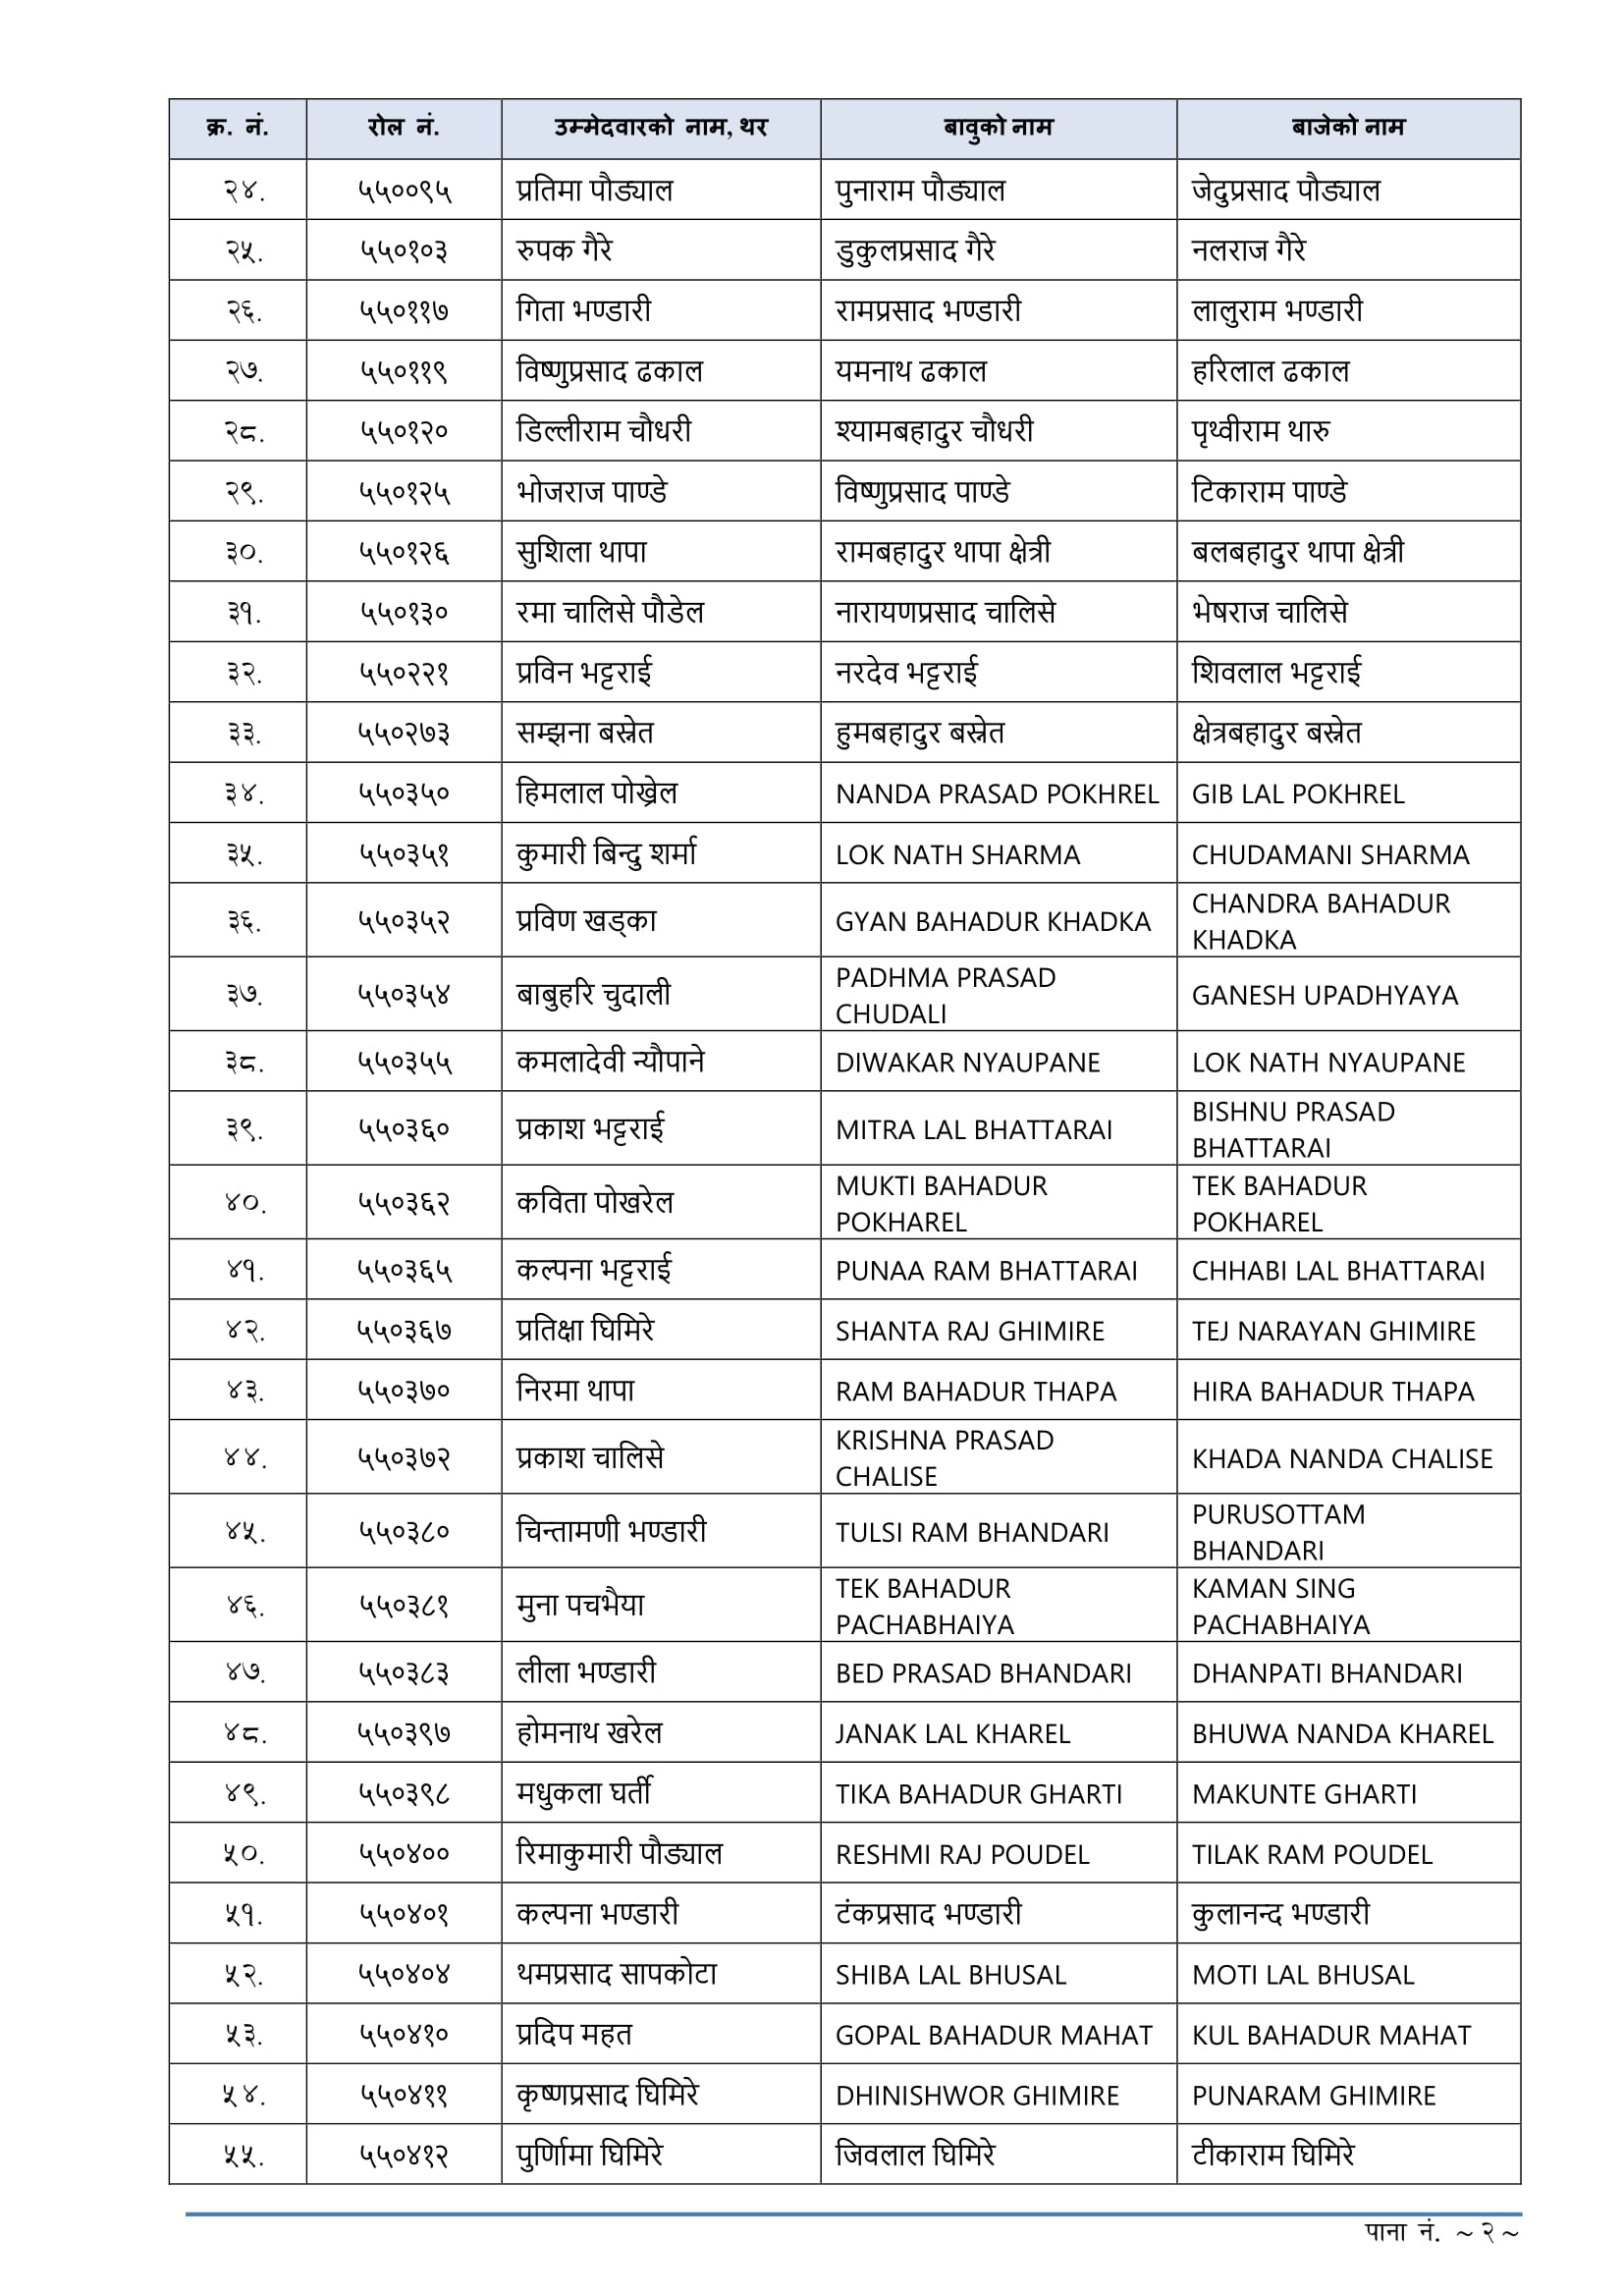 Lok Sewa Aayog Kharidar Written Exam Result - Butawal Lok Sewa Aayog Kharidar Written Exam Result-Butawal. Lok Sewa Aayog Nepal Butawal has published the Entrance Exam result of local level (Sthaniya Taha) Non-Technical 4th level Advertisement No. 15716-15719 / 075-076 (Open and Inclusive), Integral Examination System 4th level (Non-Technical) examination Result of Butawal. The Written Examination total number of Participant 4110 this candidate has been selected 652 in the Entrance Exam.Lok Sewa Aayog Result 2076 Kharidar 4th Level (Sthaniya Taha)Lok Sewa Aayog (Public Service Commission) publishes the final result of written examination 4th Level, Non-Technical, Kharidar (Sthaniya Taha 4th Level) equivalent of the following Regions/districts.Lok Sewa Aayog Result- ButawalLok Sewa Aayog Nepal Published Local Level 5th Level Non-Technical Written Exam of the Entrance exam. The information for the Lok Sewa Aayog result update of Sthanaya Taha 4th level (Kharidar Result) entrance exam result has collected from the official site of Lok Sewa Aayog Nepal. These Lok Sewa Aayog result notices are for all advertisement numbers of the following Regions/districts.Click here to view Lok Sewa Aayog Kharidar Written Exam Result - Butawal Lok Sewa Aayog Jaleshwar Khridar Result 2076, Lok Sewa Aayog Jaleshwar Khridar Result, Jaleshwar Khridar Result 2076, Jaleshwar Khridar Result,lok sewa natija, Lok Sewa Natija 2076, Lok Sewa Result, Lok Sewa Result 2076, Lok Sewa Aayog Natija, Lok Sewa Aayog Natija 2076, lok sewa aayog result, Lok Sewa Aayog Result 2076, Lok sewa Aayog Sthaniya Taha result , Lok sewa Sthaniya Taha result, Lok Sewa Nayab Subba Result, lok sewa Nayab Subba result, Lok Sewa Result Nayab Subba, Lok Sewa Result Nayab Subba 2076 , psc Nayab Subba result , PSC Nayab Subba Result 2076, Sthaniya Taha Nayab Subba natija , Sthaniya Taha Nayab Subba result, Lok sewa aayog Nayab Subba Result ,lok sewa aayog Nayab Subba result 2076, Lok Sewa Khridar Result,lok sewa Khridar res